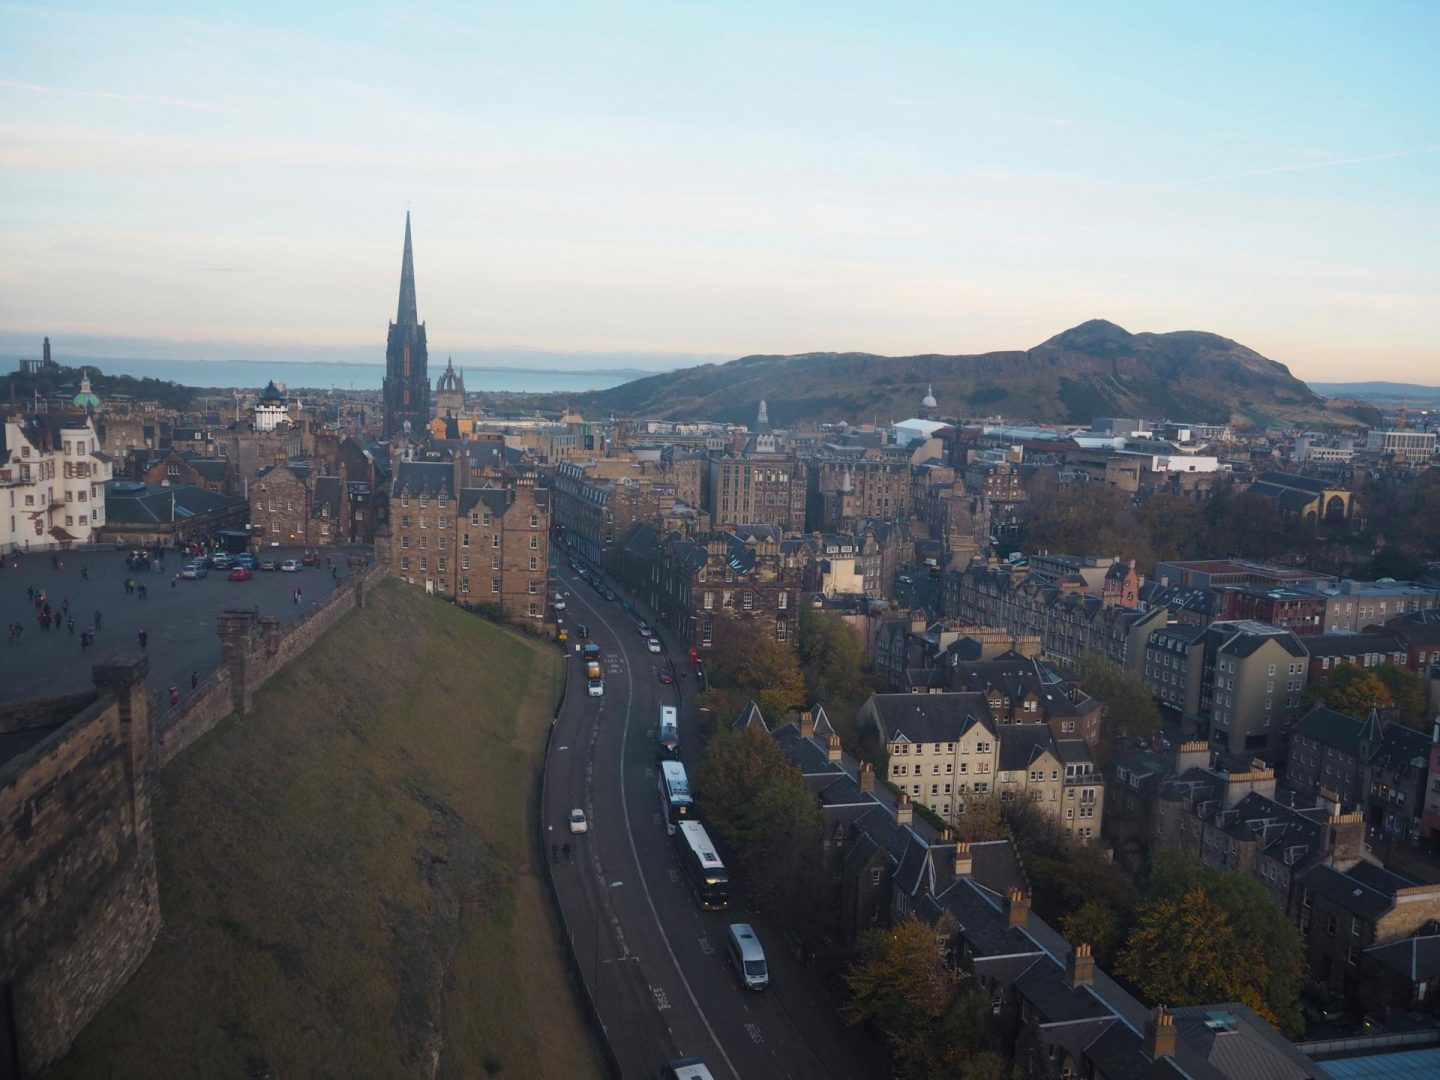 edinburgh-in-32-hours-rachel-nicole-uk-travel-blogger-7